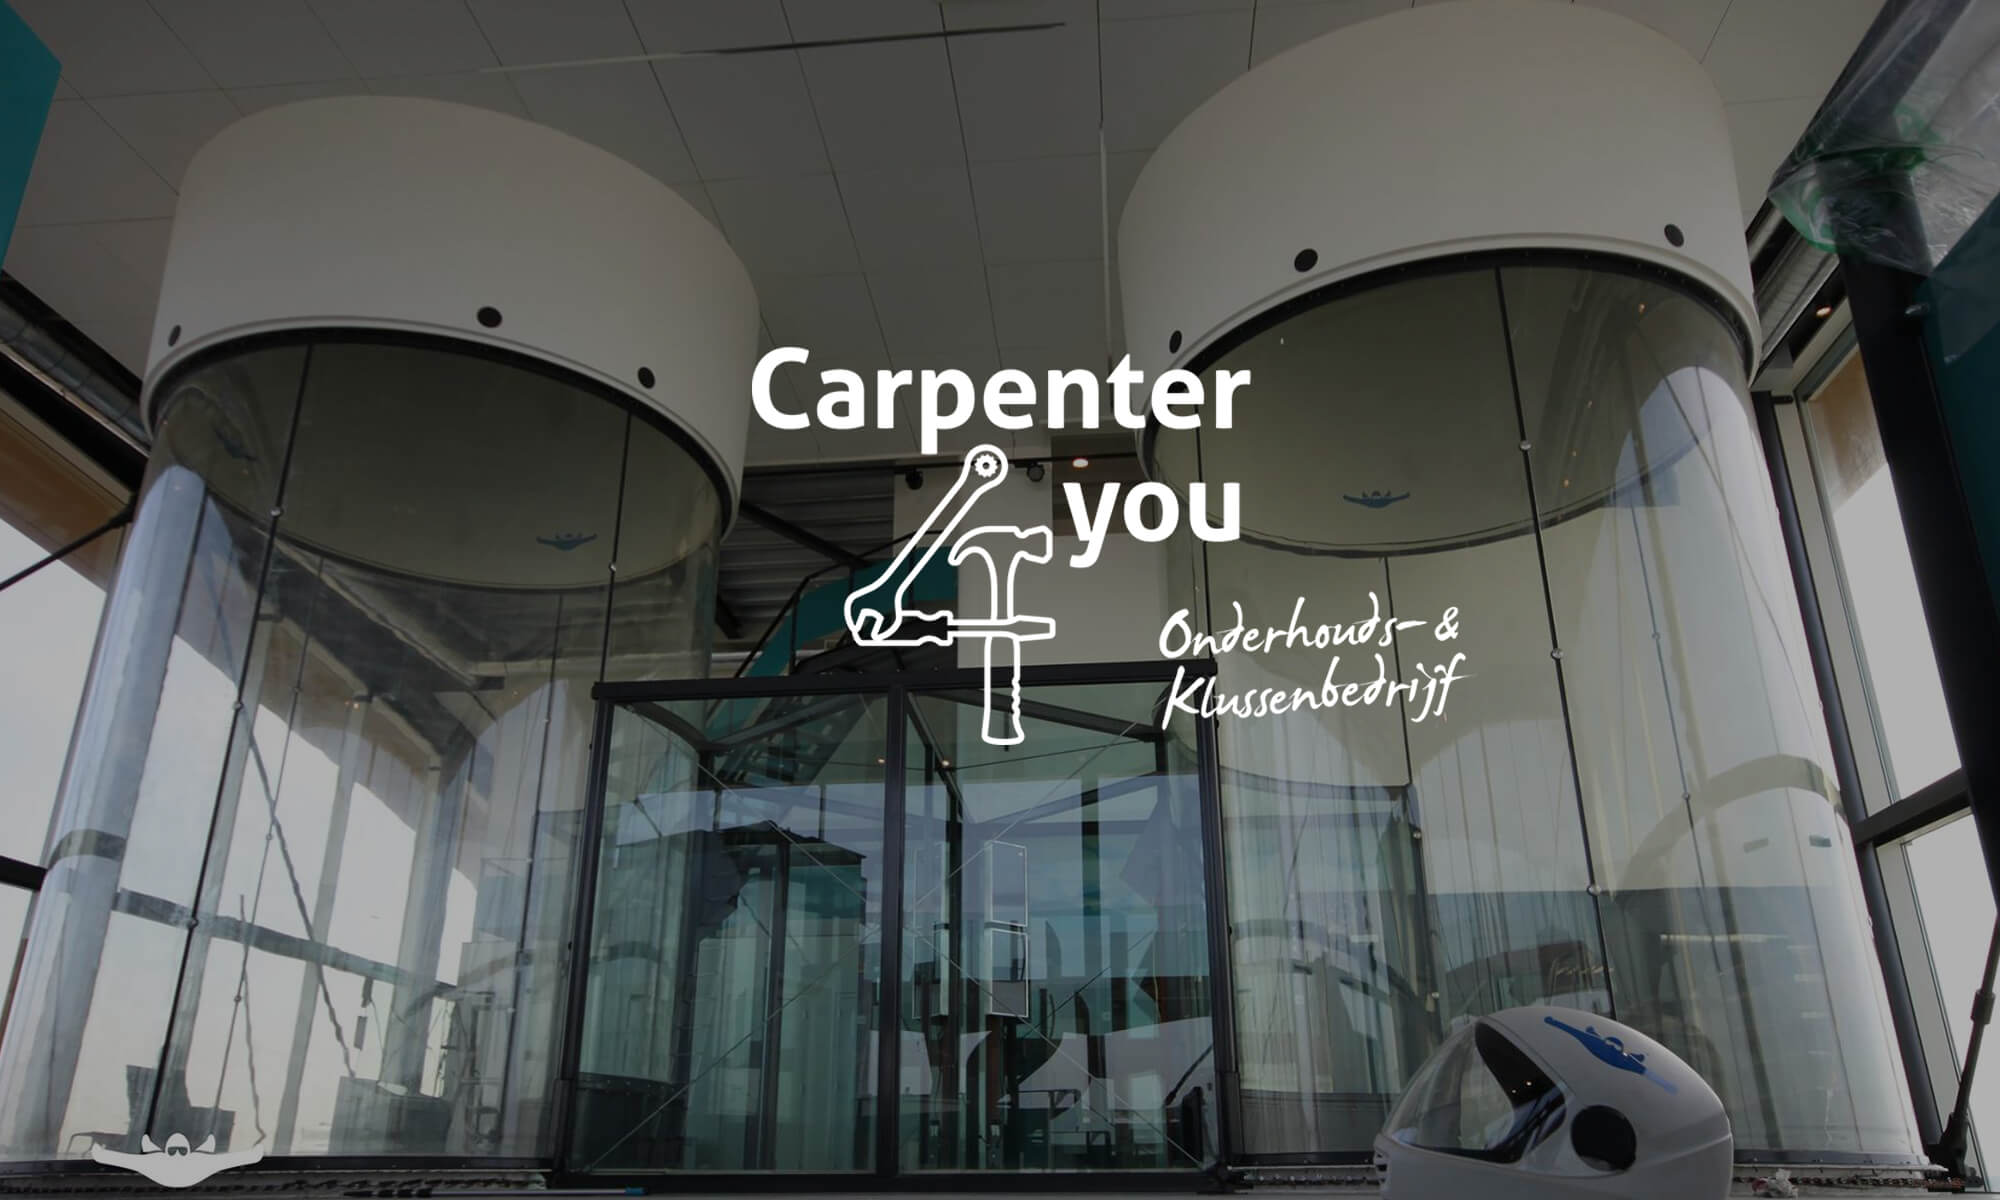 Carpenter 4 you